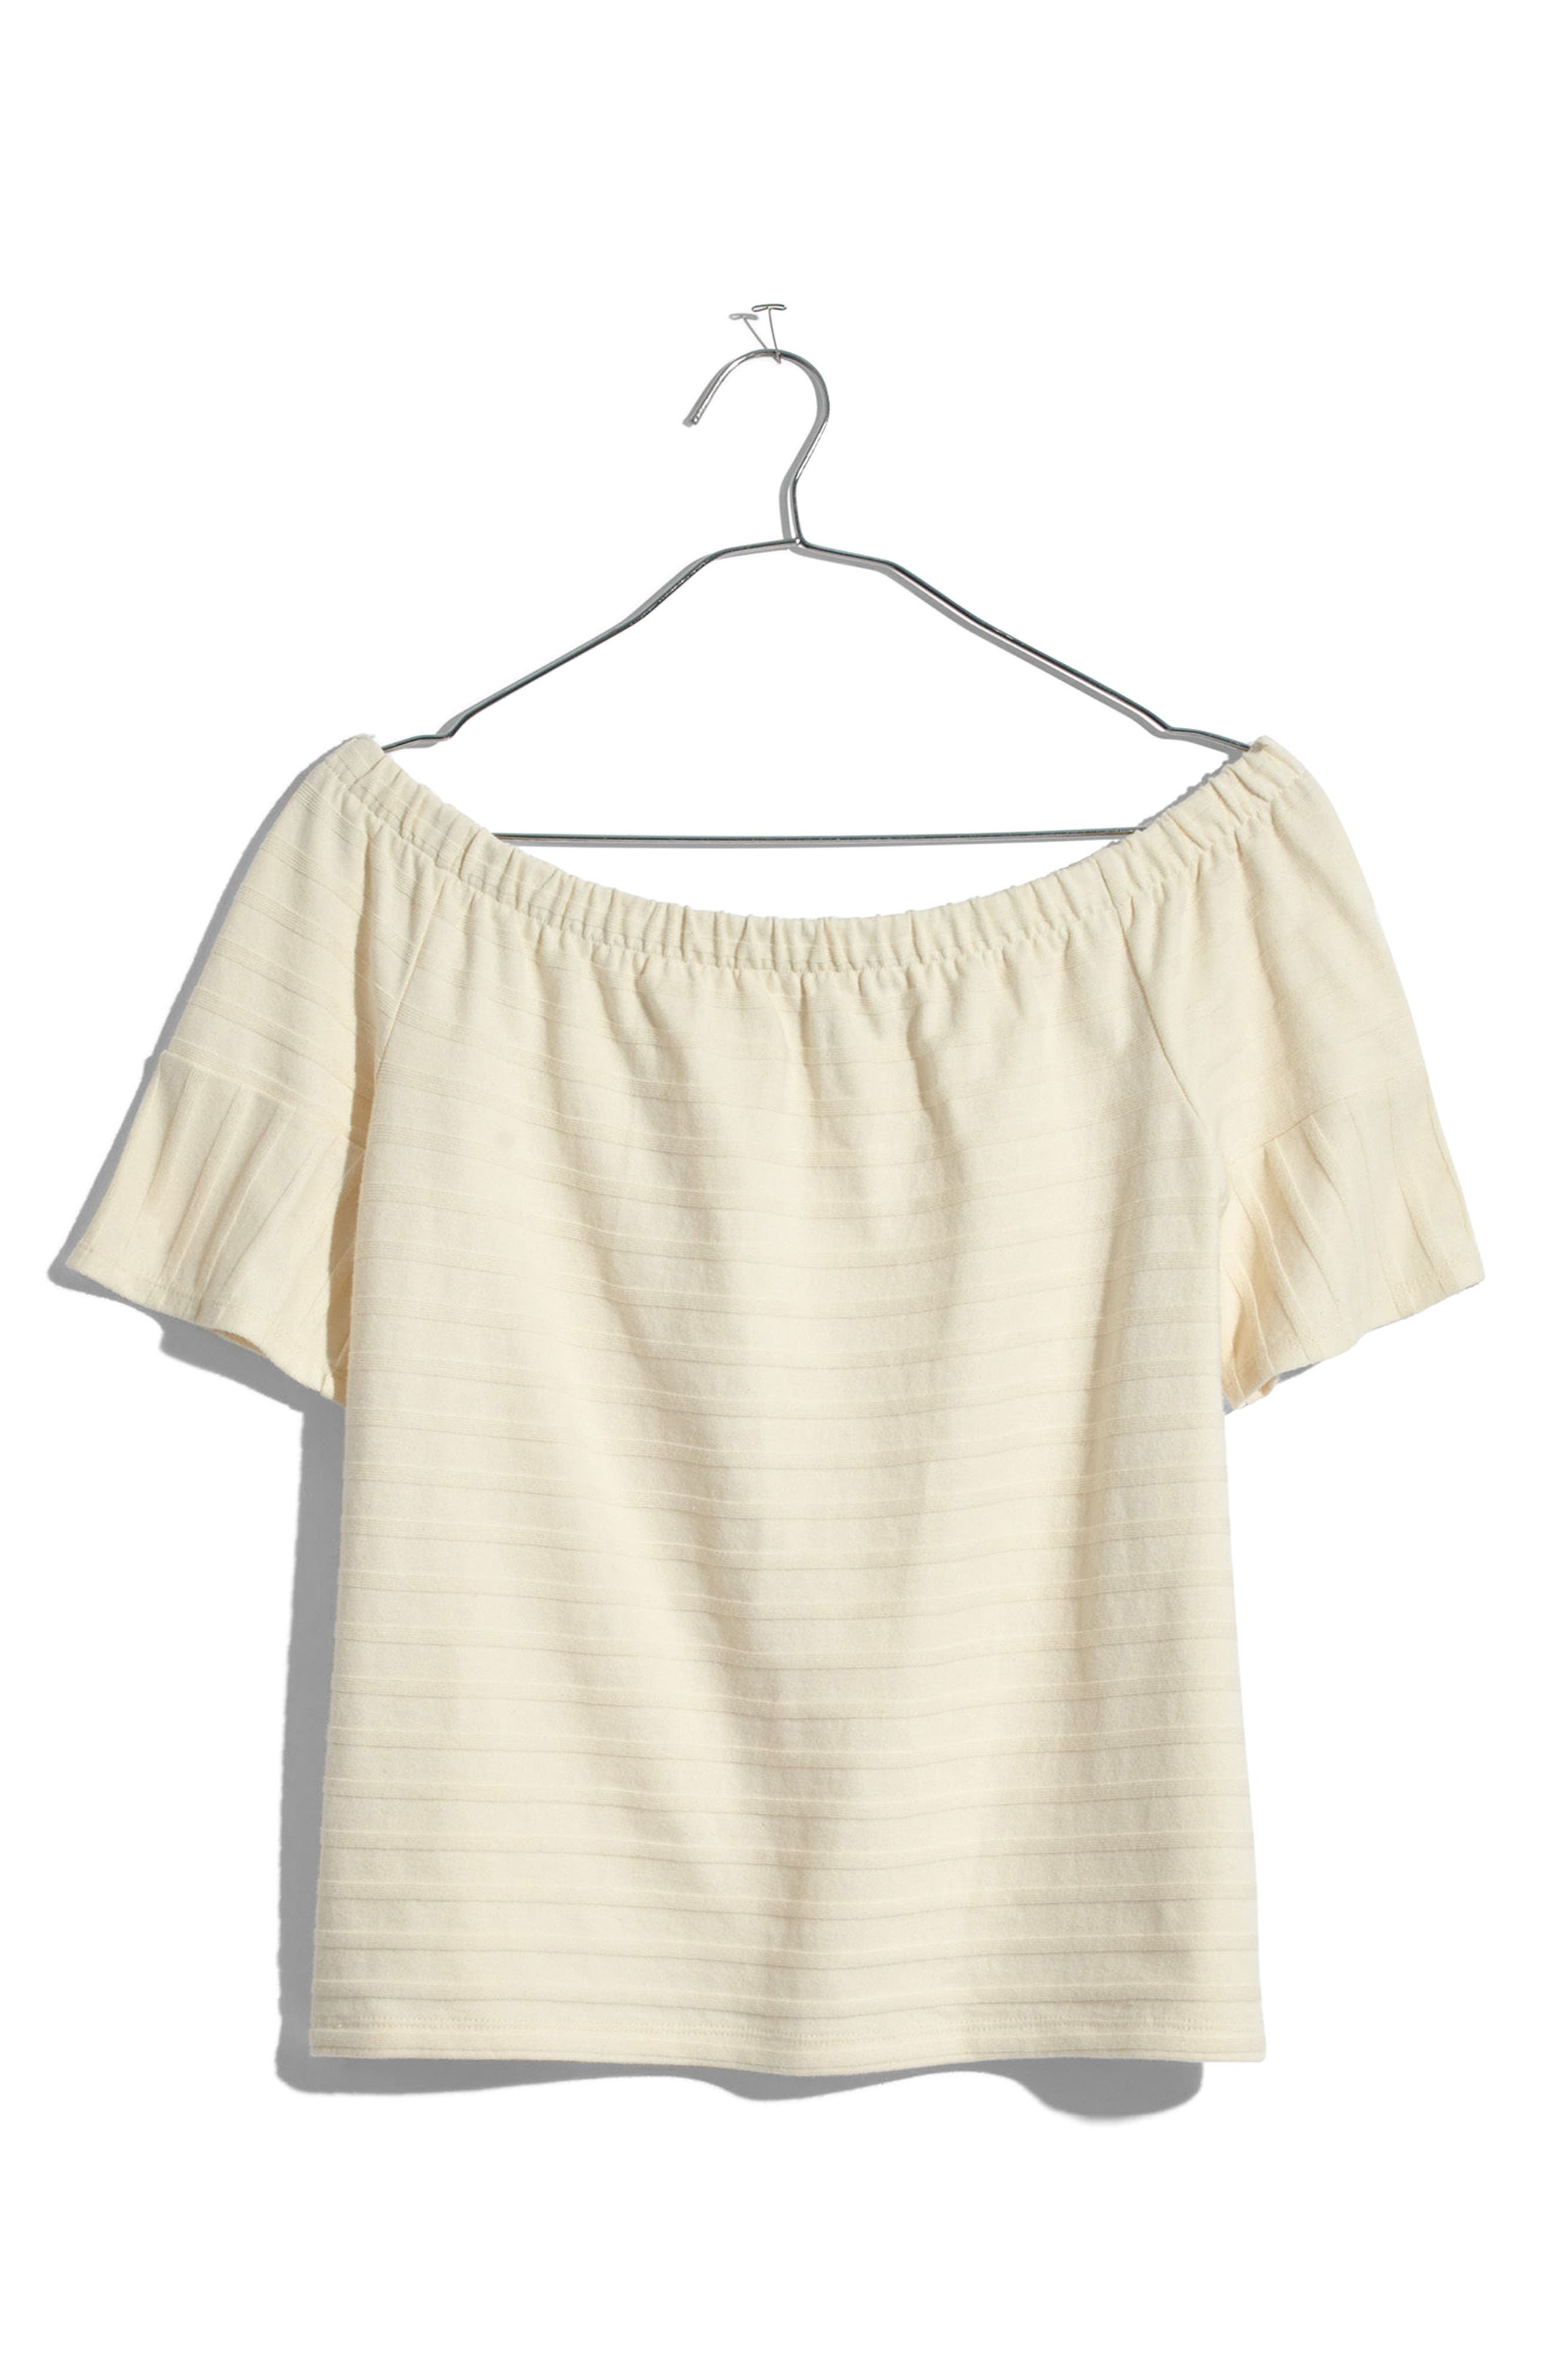 Alternate Image 3  - Madewell Off the Shoulder Knit Top